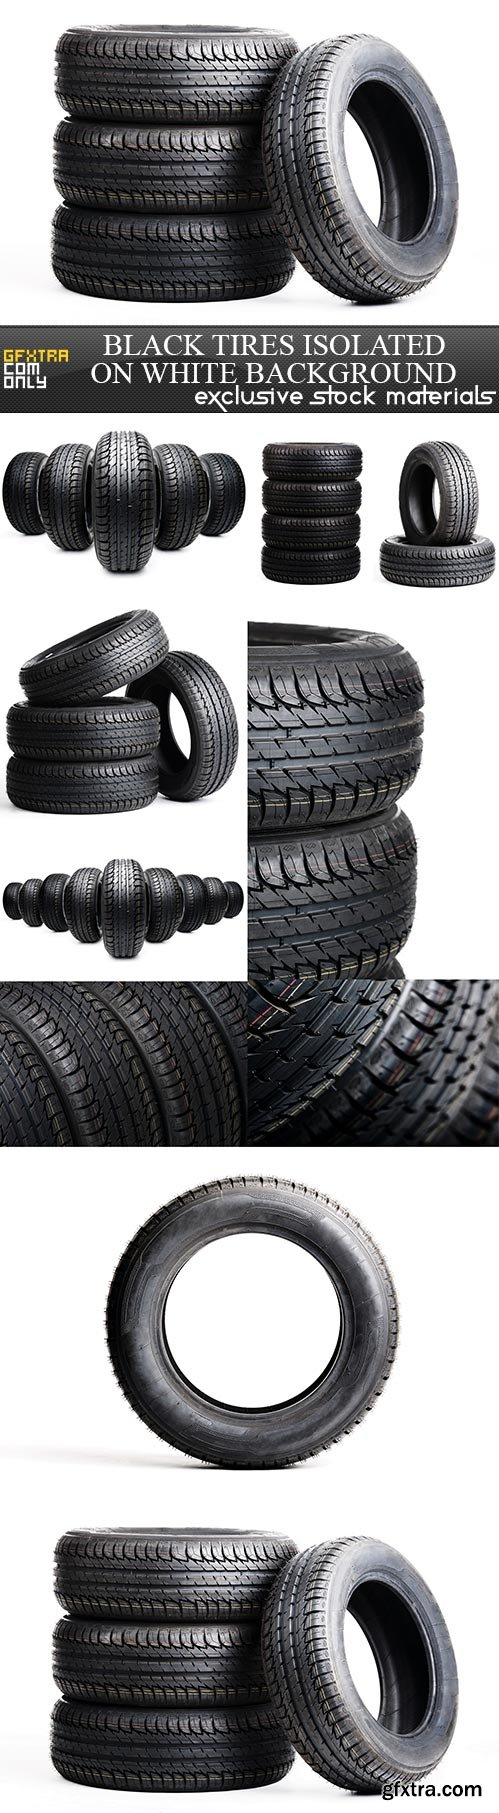 Black tires isolated on white background, 10 x UHQ JPEG